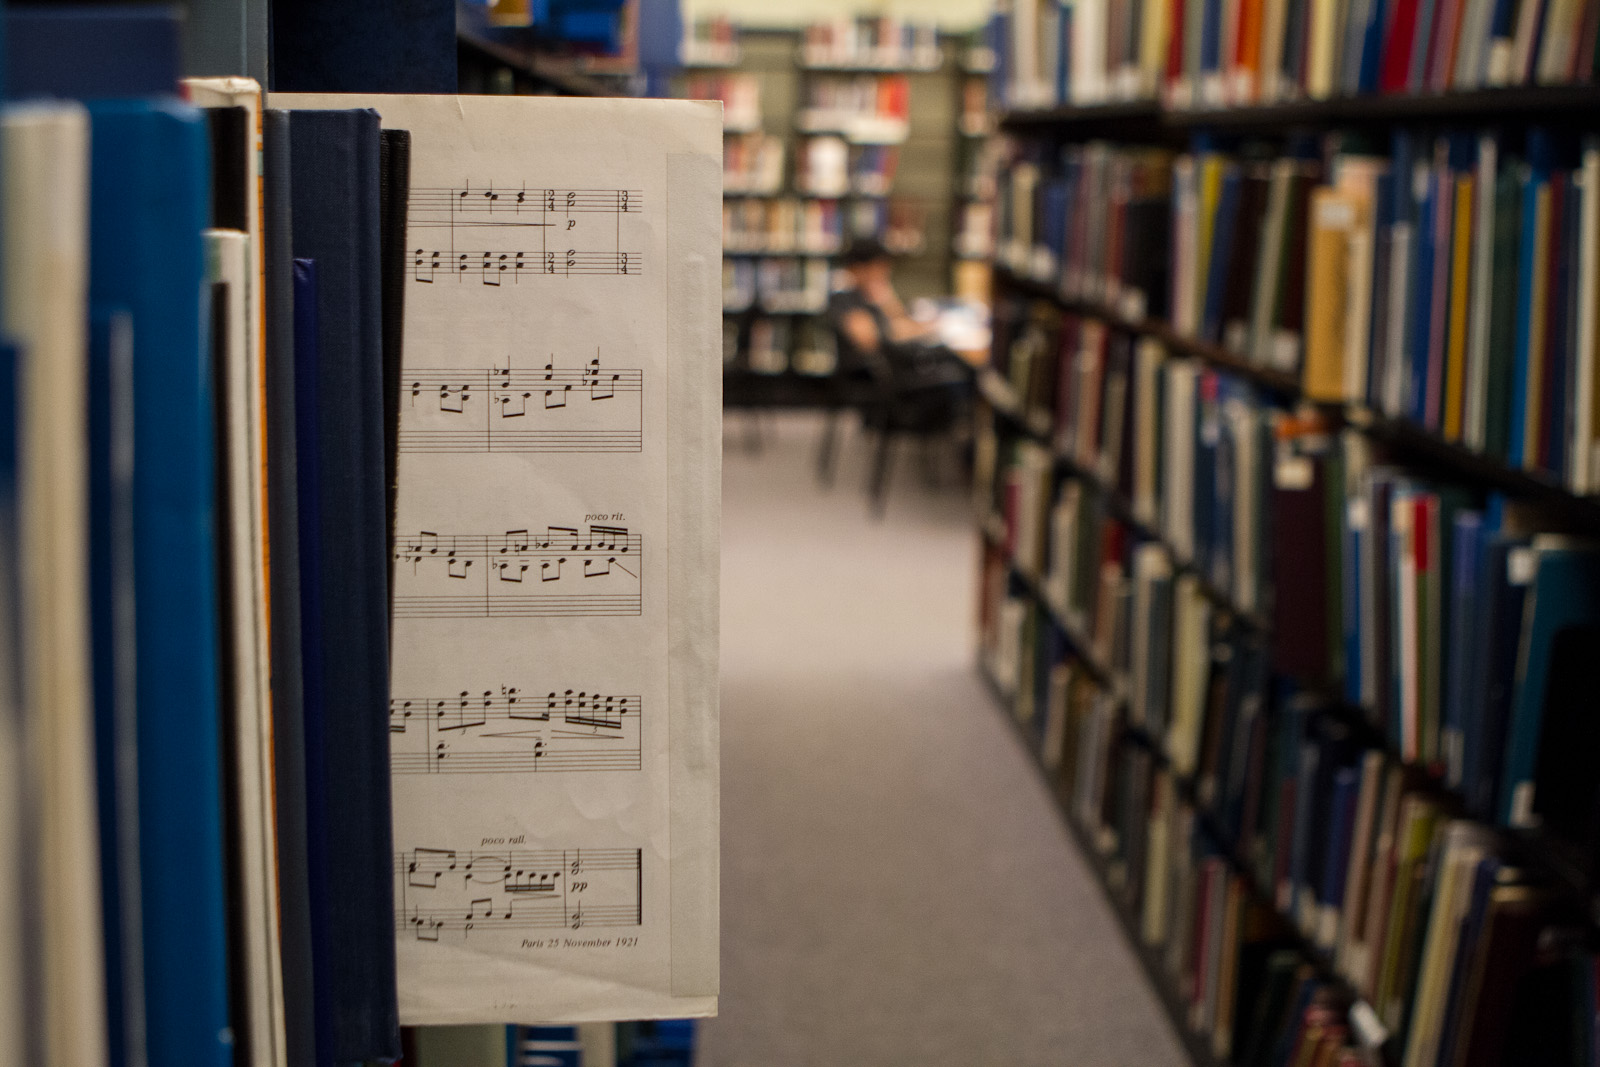 https://www.imoveilive.com/wp-content/uploads/2015/06/music-library.jpg